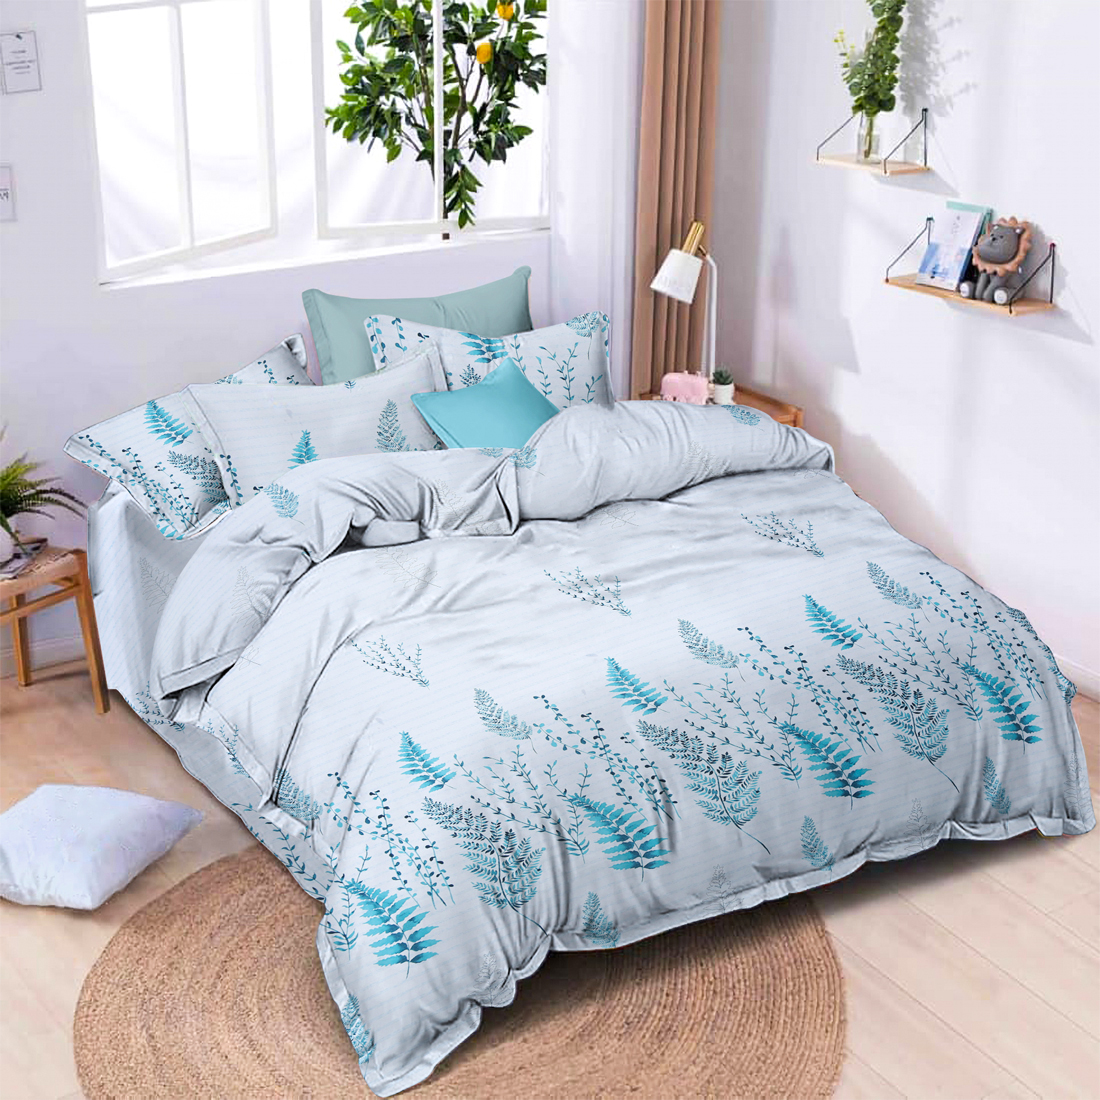 Stanley Superior Quality Double Bedsheets